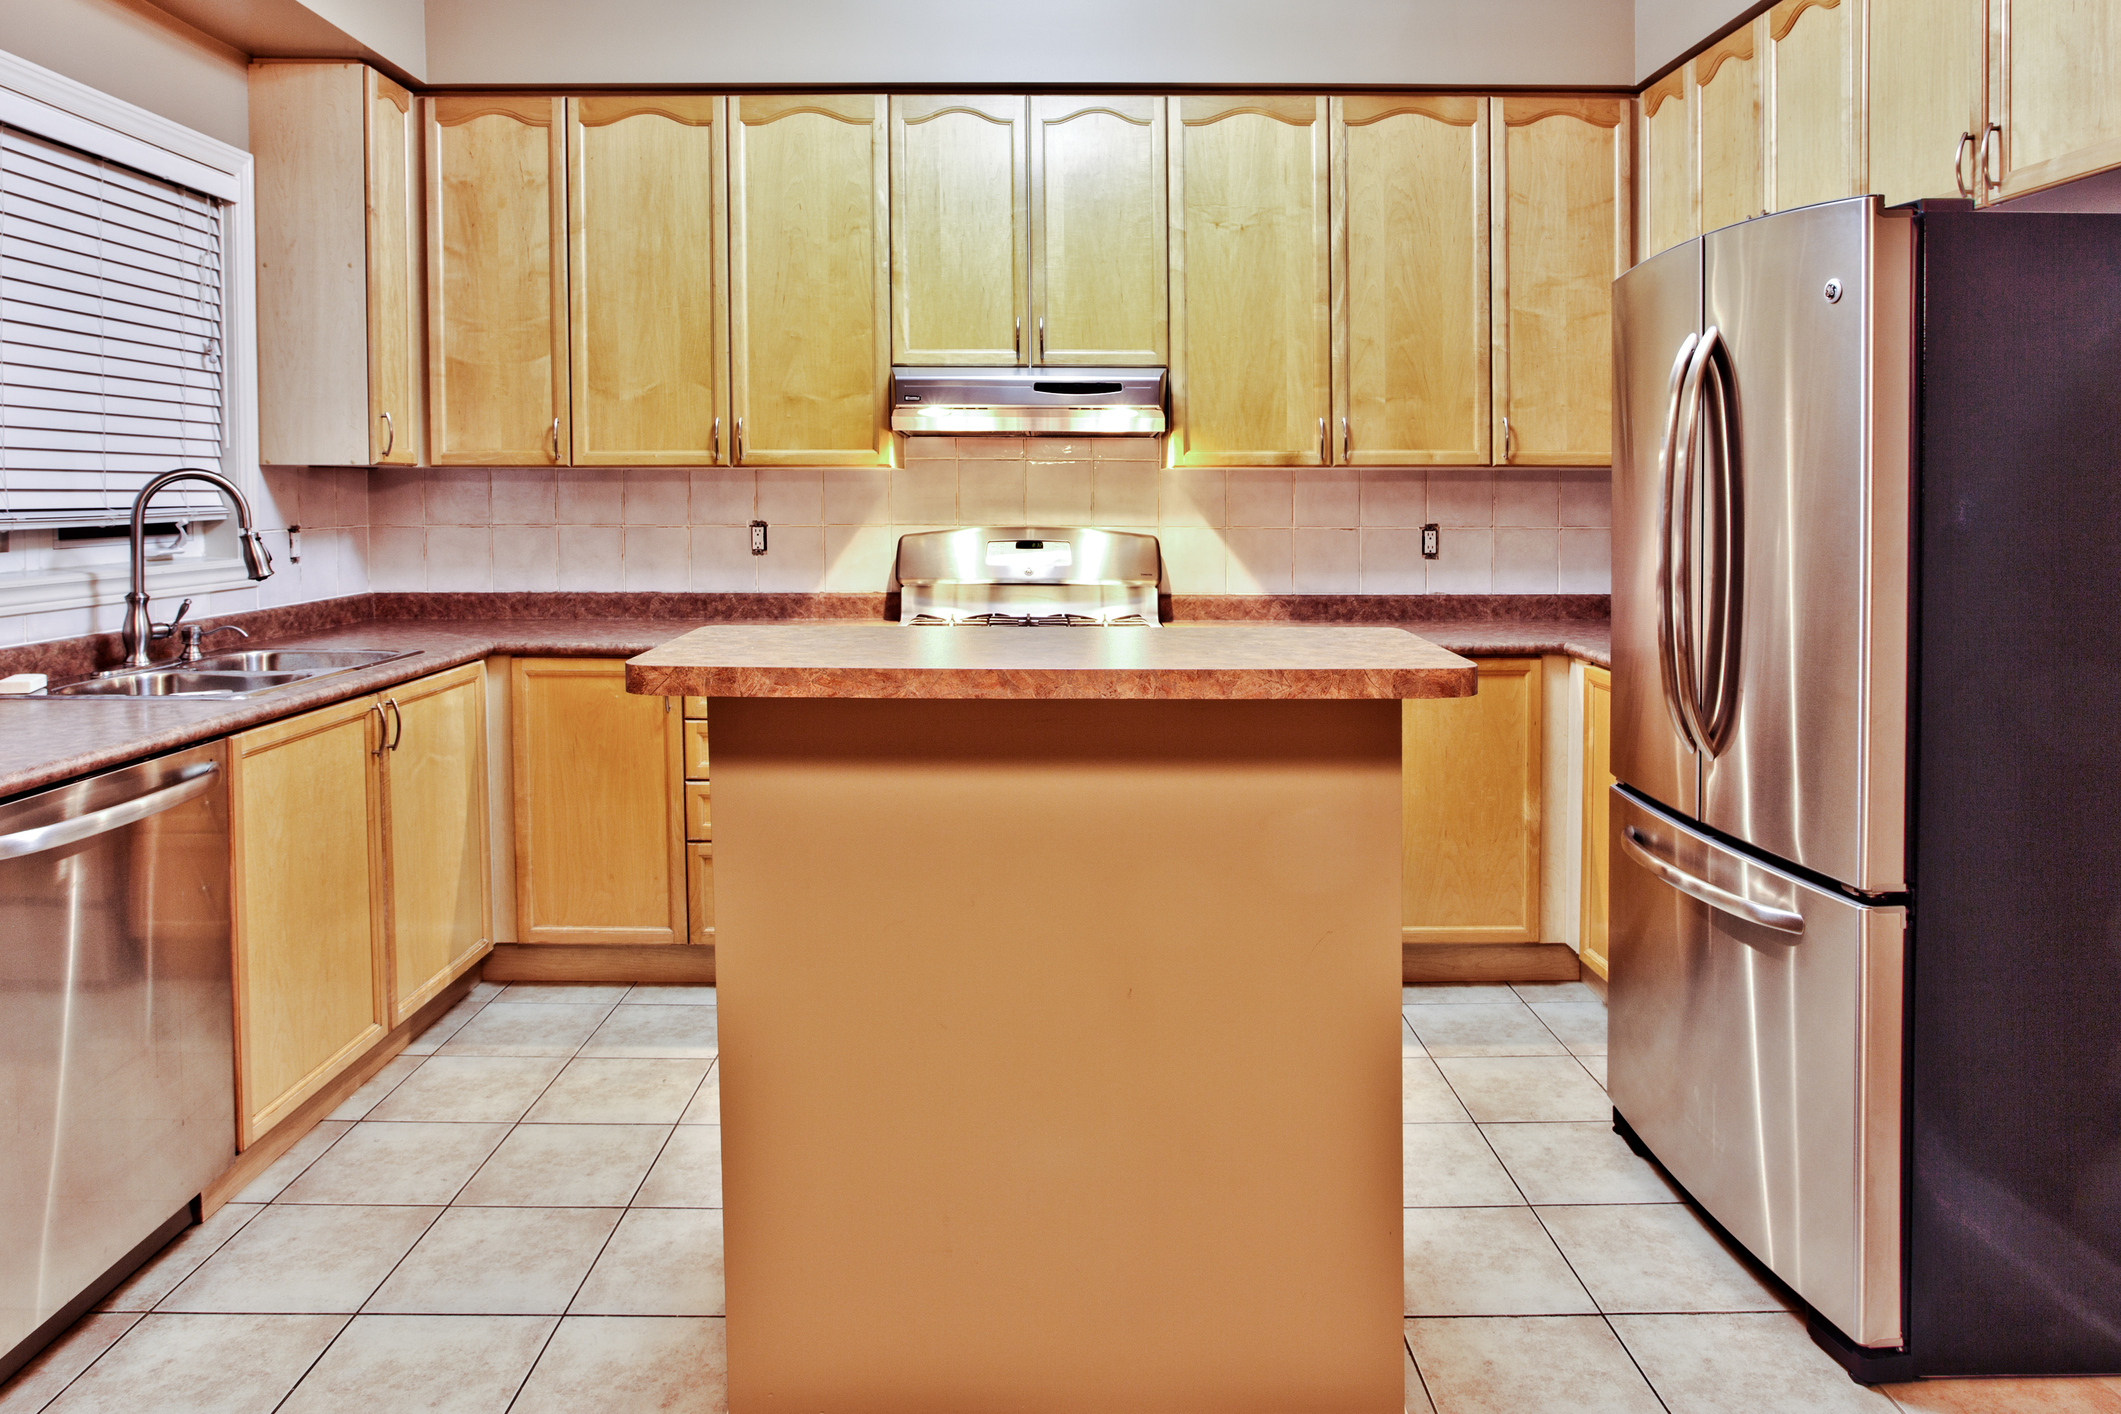 Kitchen that is dated and could be refaced in pittsburgh